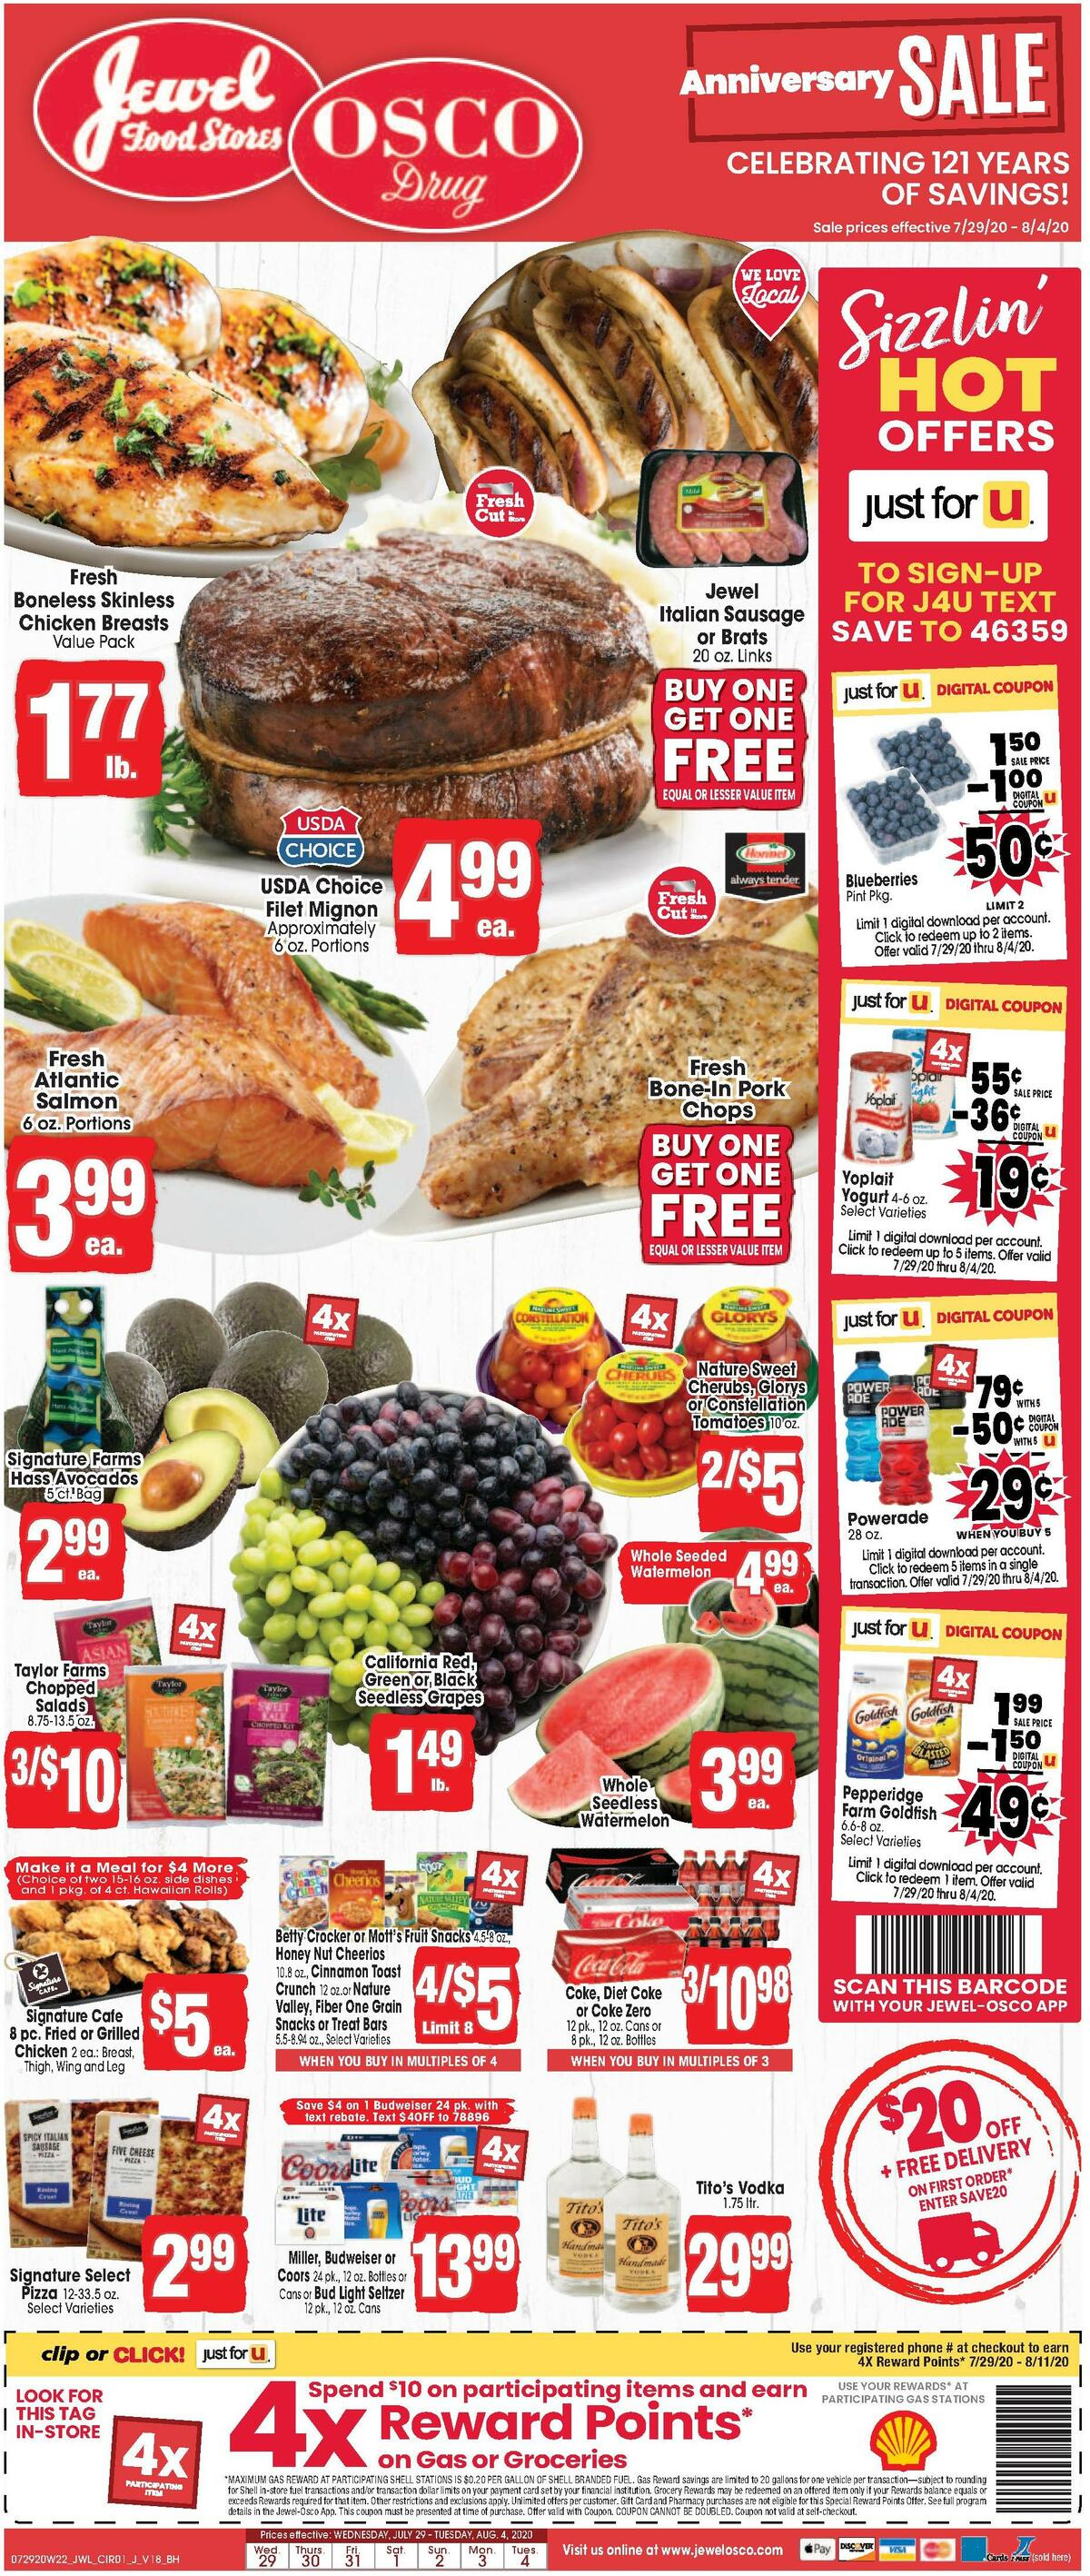 Jewel Osco Weekly Ad from July 29